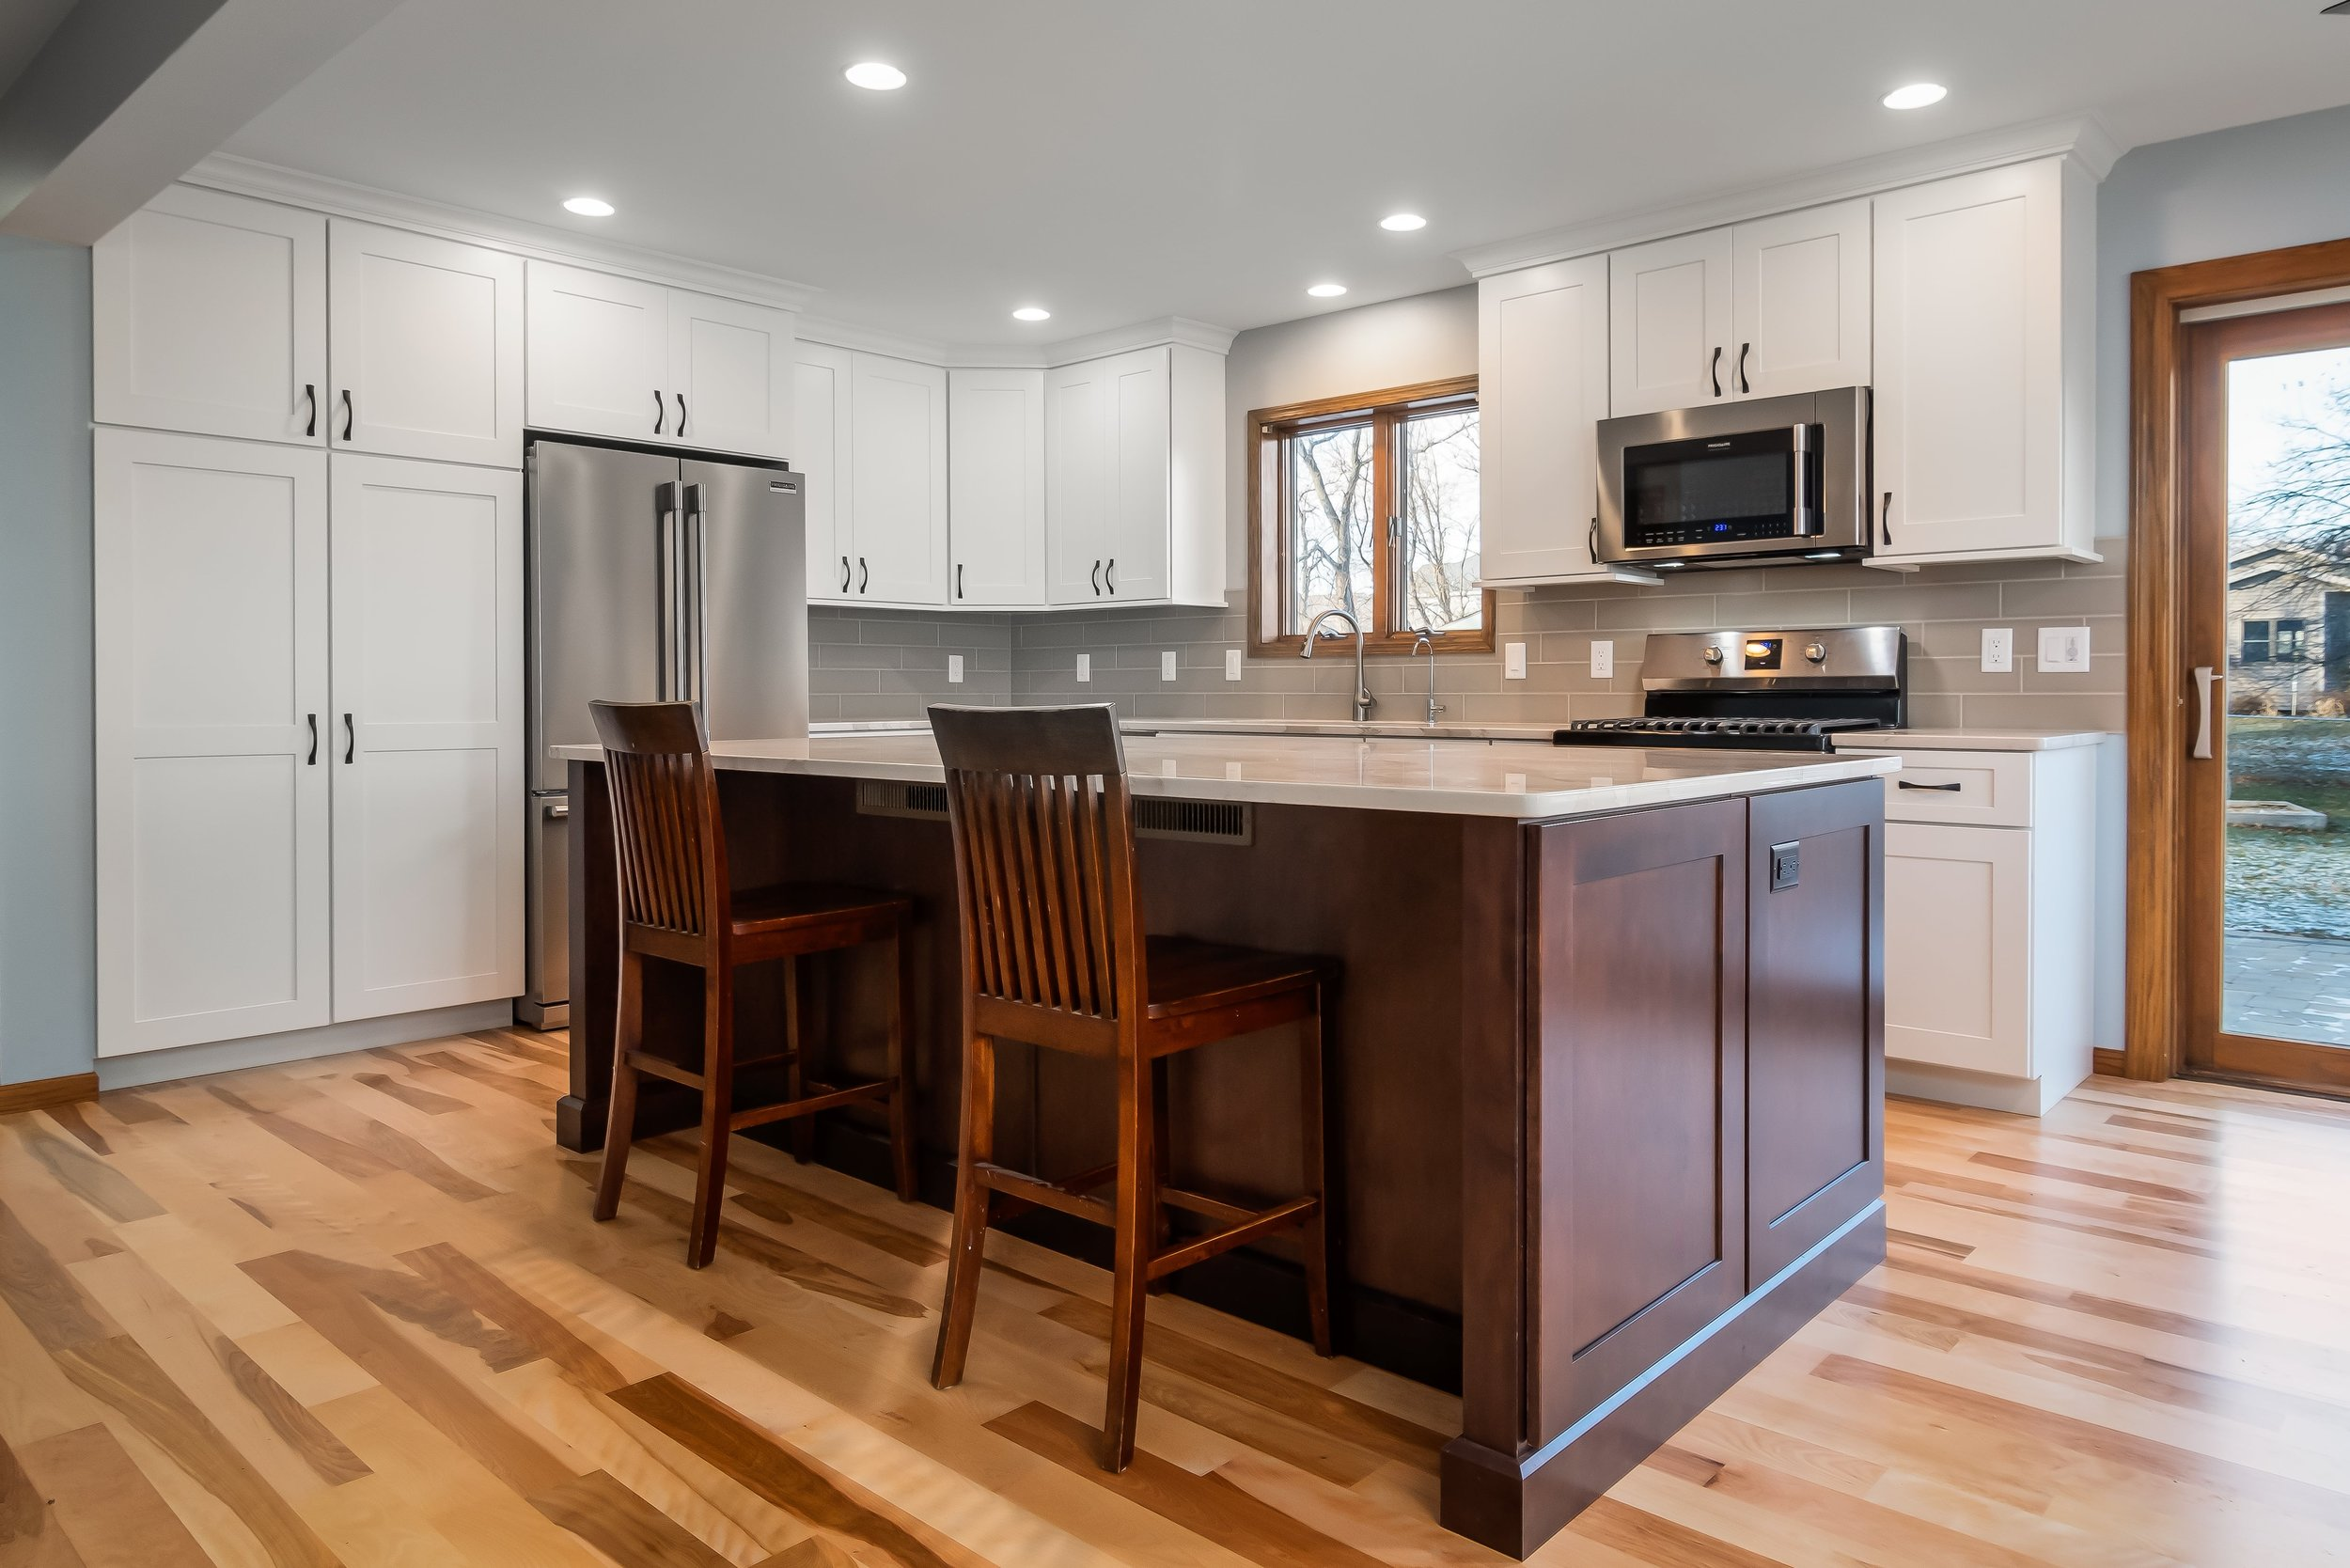 kitchen-remodel-makover-hardwood-white-gray-cottage-grove-wi-2-min.jpg